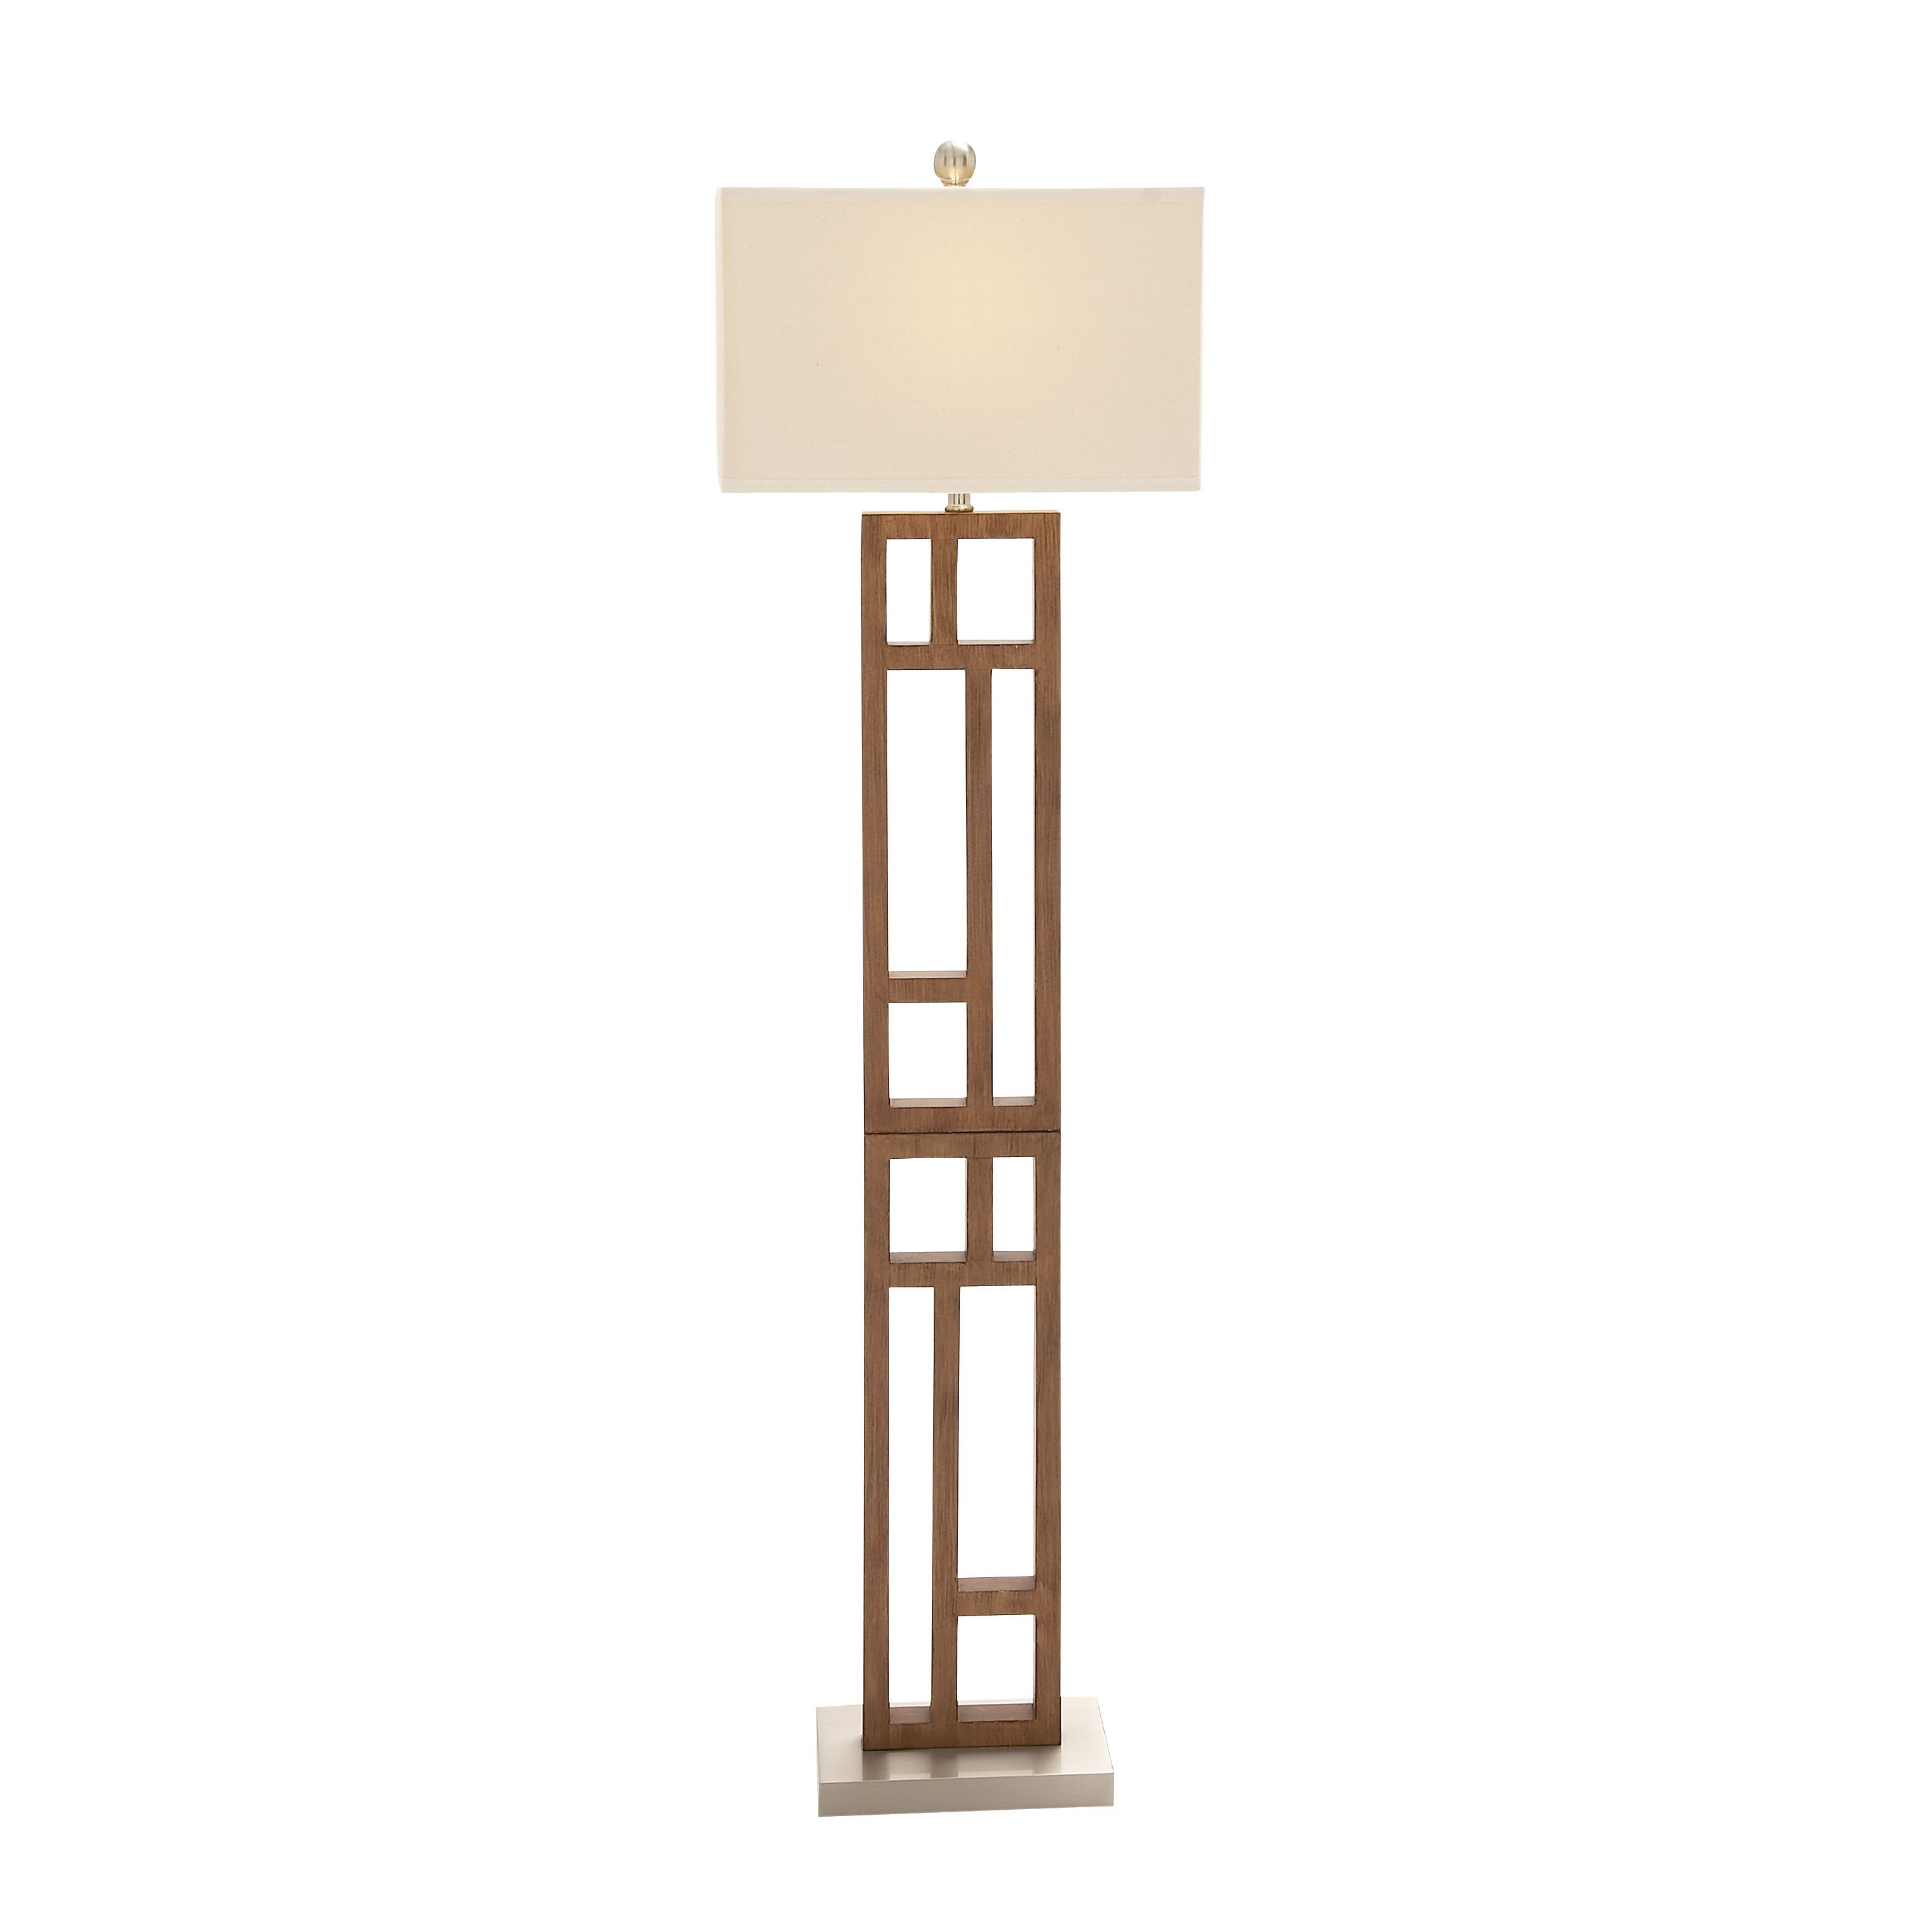 Modern and Stainless Steel Floor Lamp